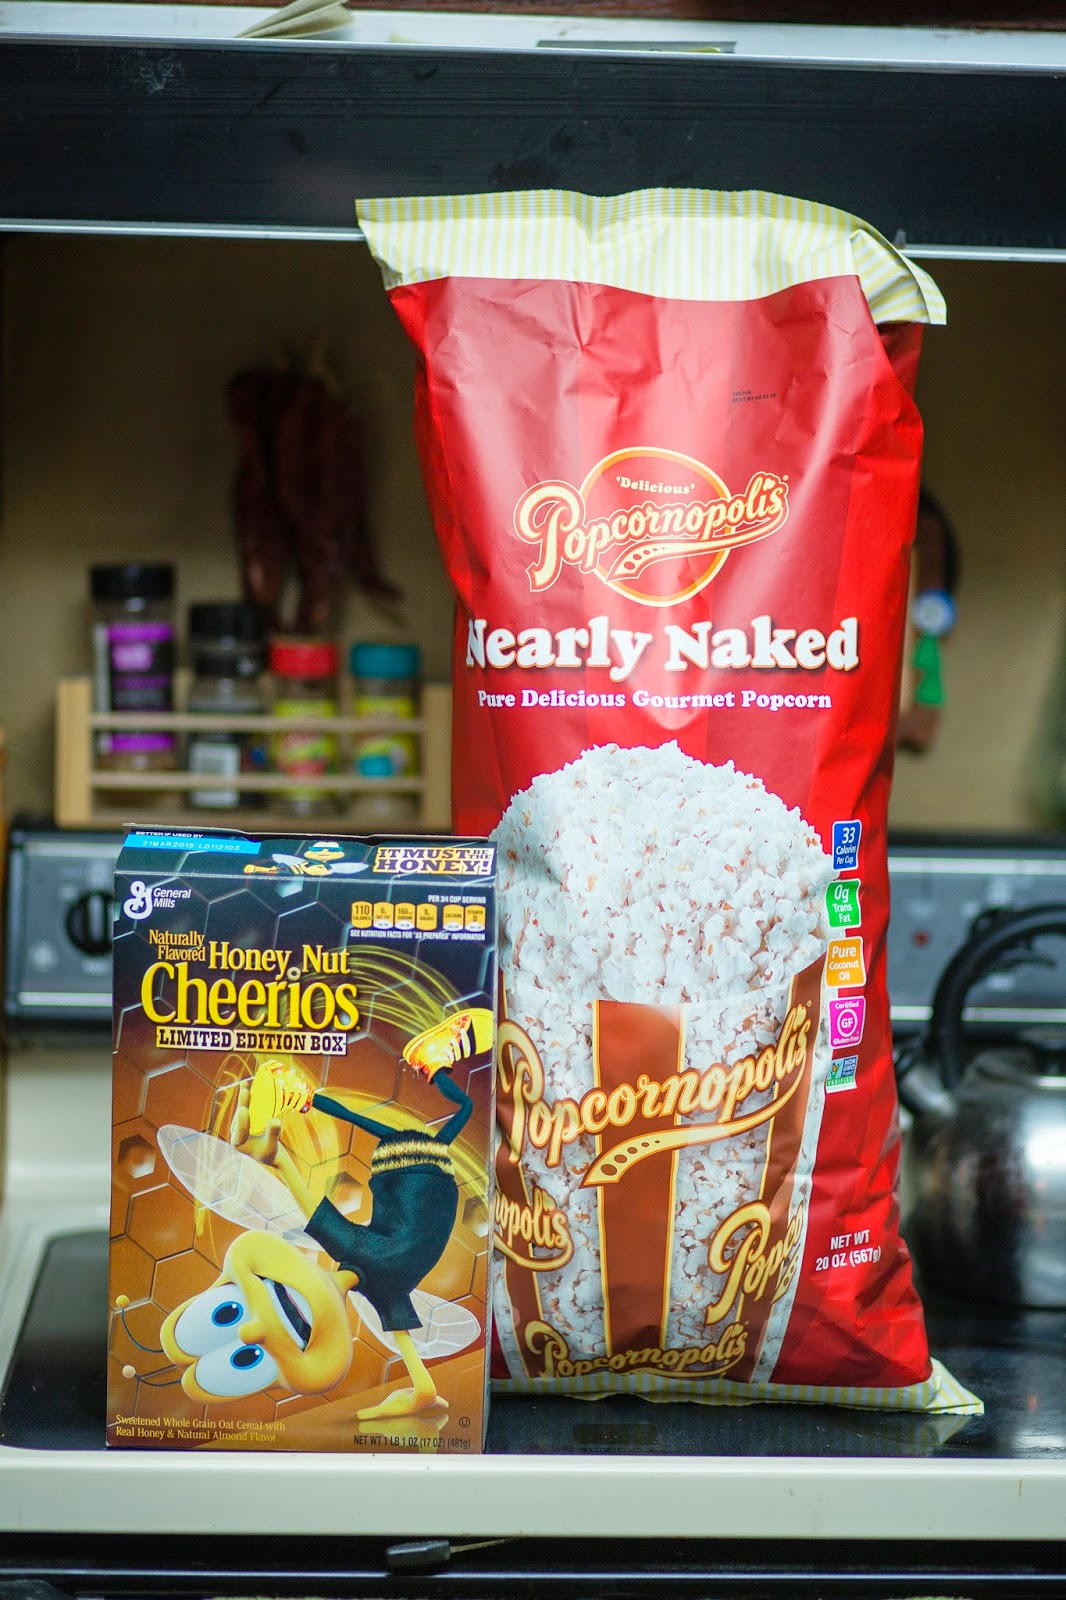 The Popcornopolis Nearly Popcorn Is Back At Costco And It S Ger That One Huge Bag Of Giant Honey Nut Cheerios Box For Scale